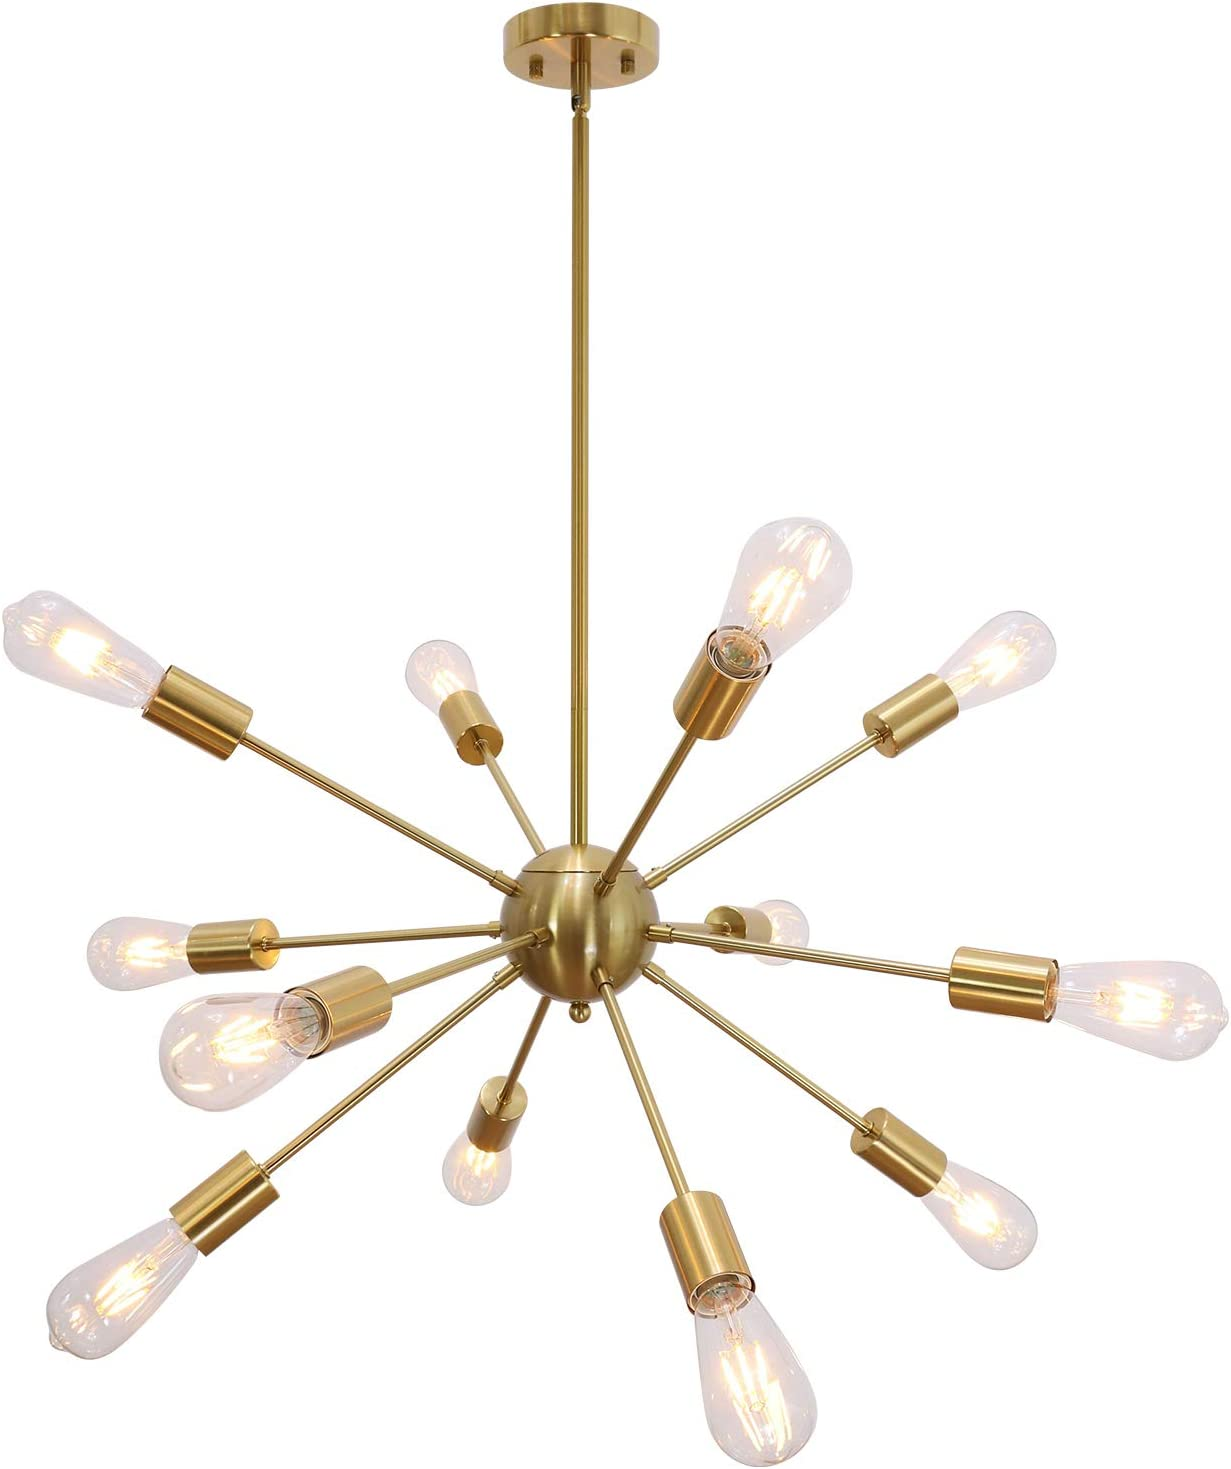 VINLUZ Modern Sputnik Chandelier 12 Light Brushed Brass Mid Century Pendant Lighting Rustic Ceiling Lights Fixtures for Dinning Room Kitchen Foyer